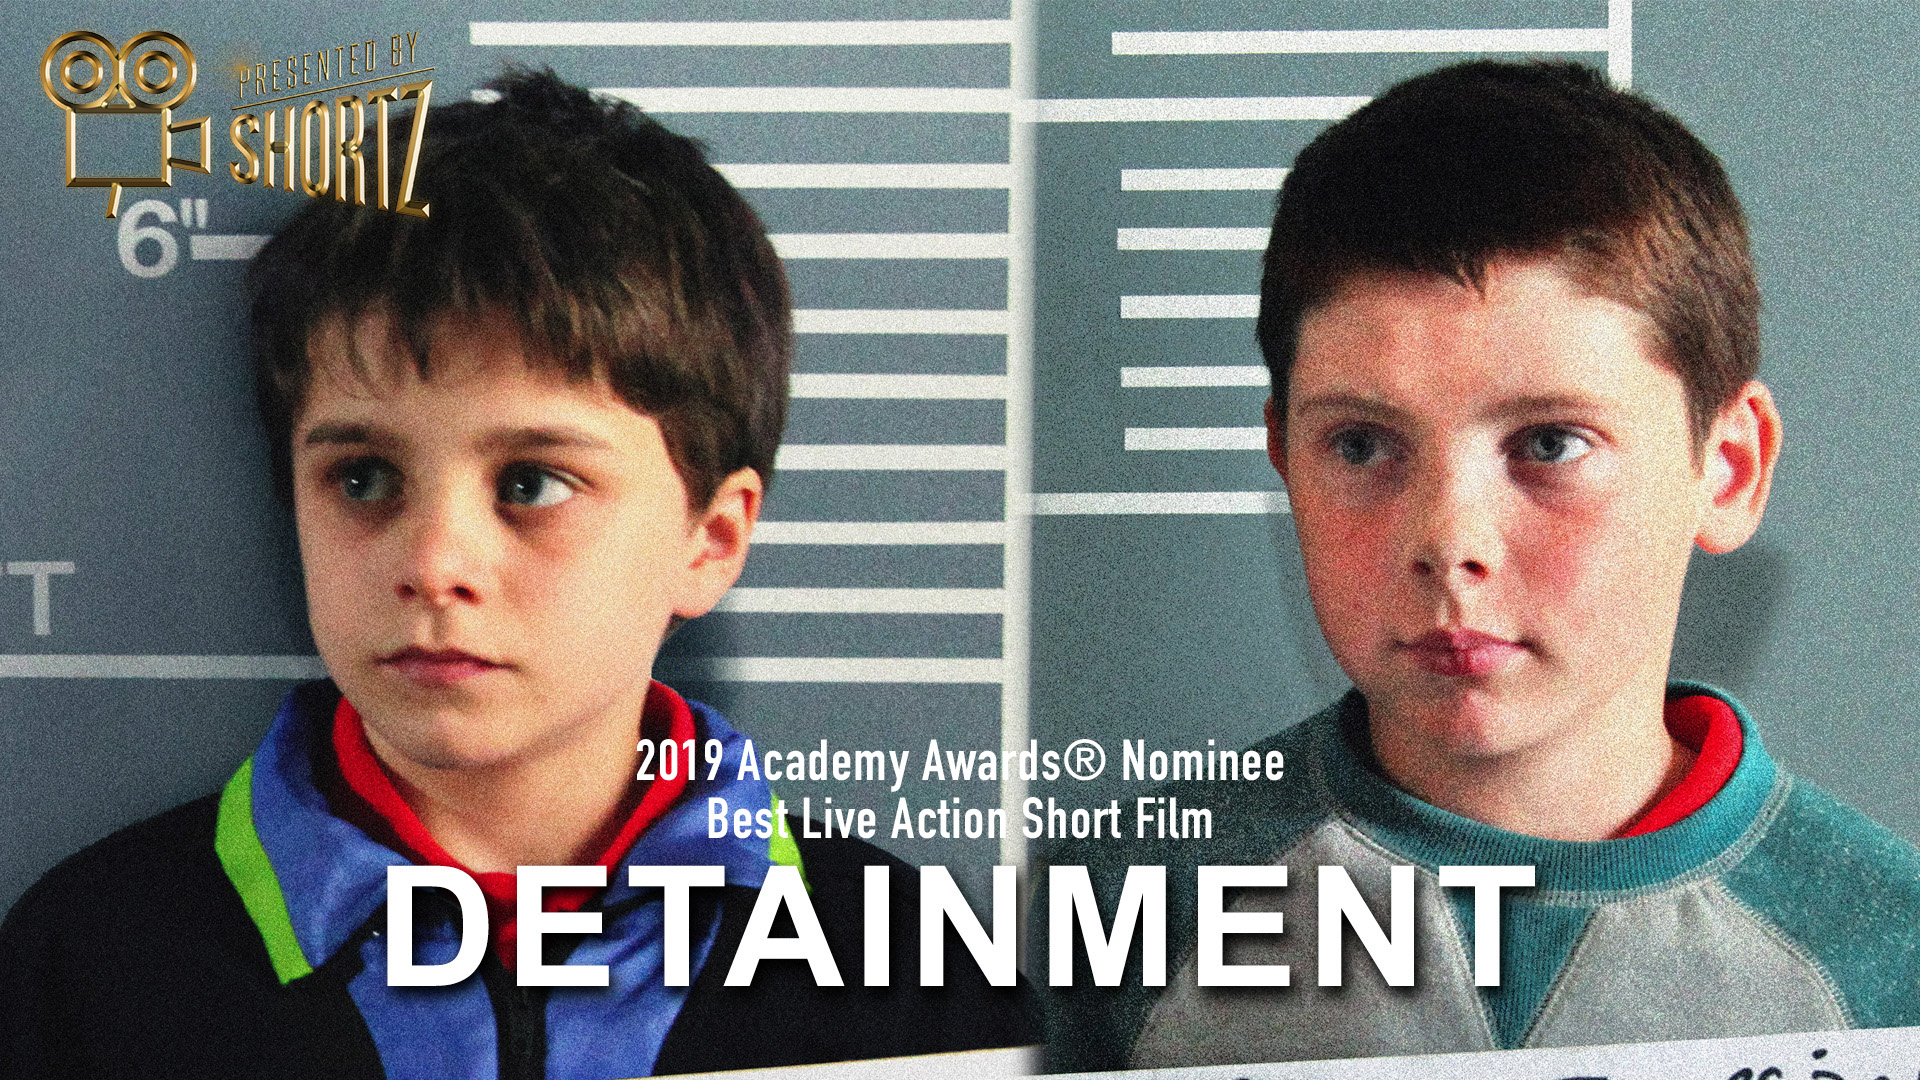 Detainment - Presented by Shortz